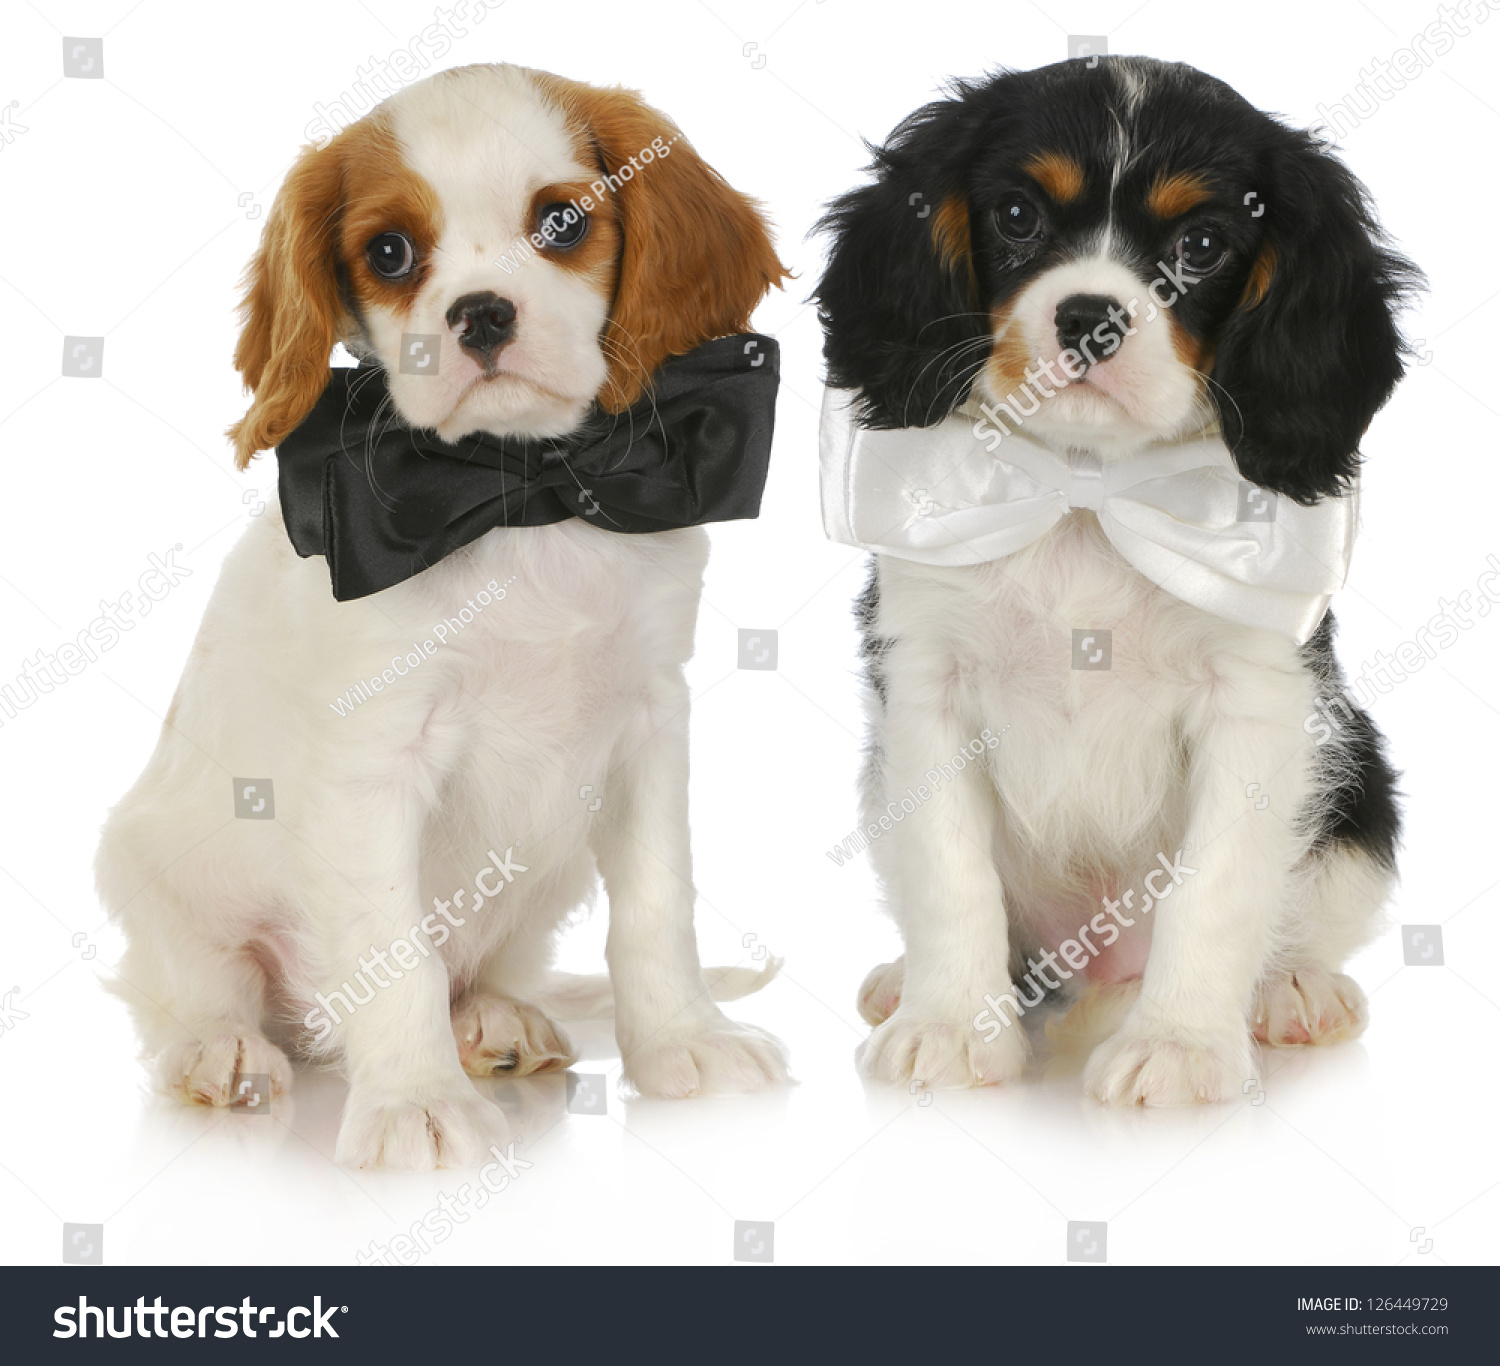 Download Charles Spaniel Brown Adorable Dog - stock-photo-two-cute-puppies-cavalier-king-charles-spaniel-puppies-wearing-bowties-sitting-on-white-background-126449729  Best Photo Reference_431462  .jpg